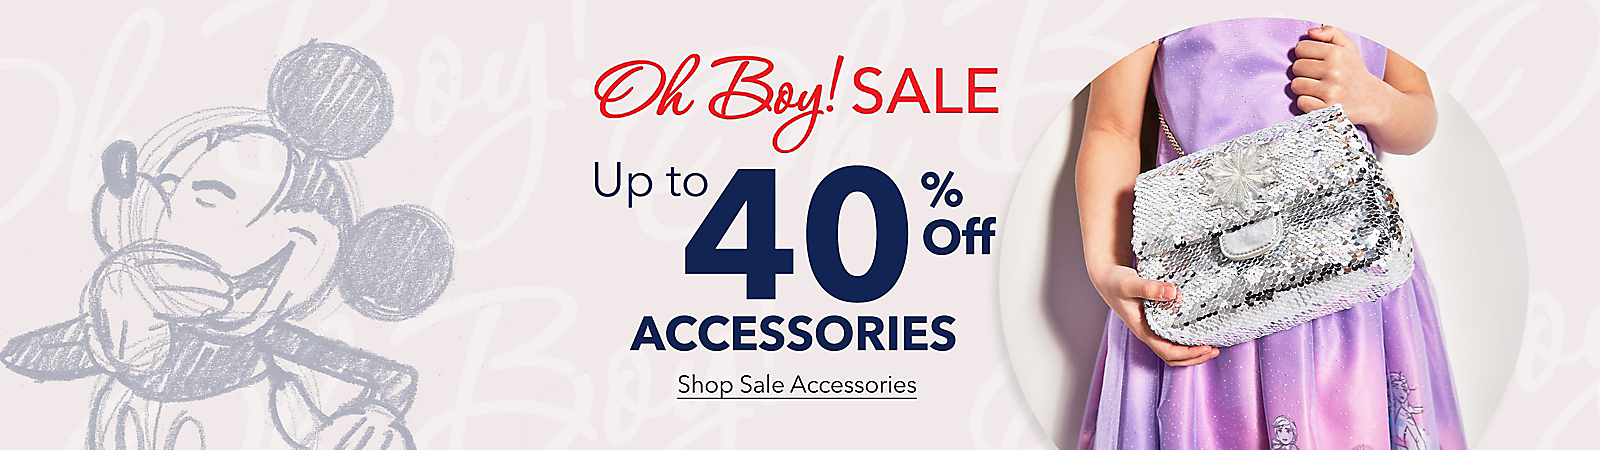 Oh, Boy! Sale on Now! Enjoy savings up to 40% off accessories. Shop Now